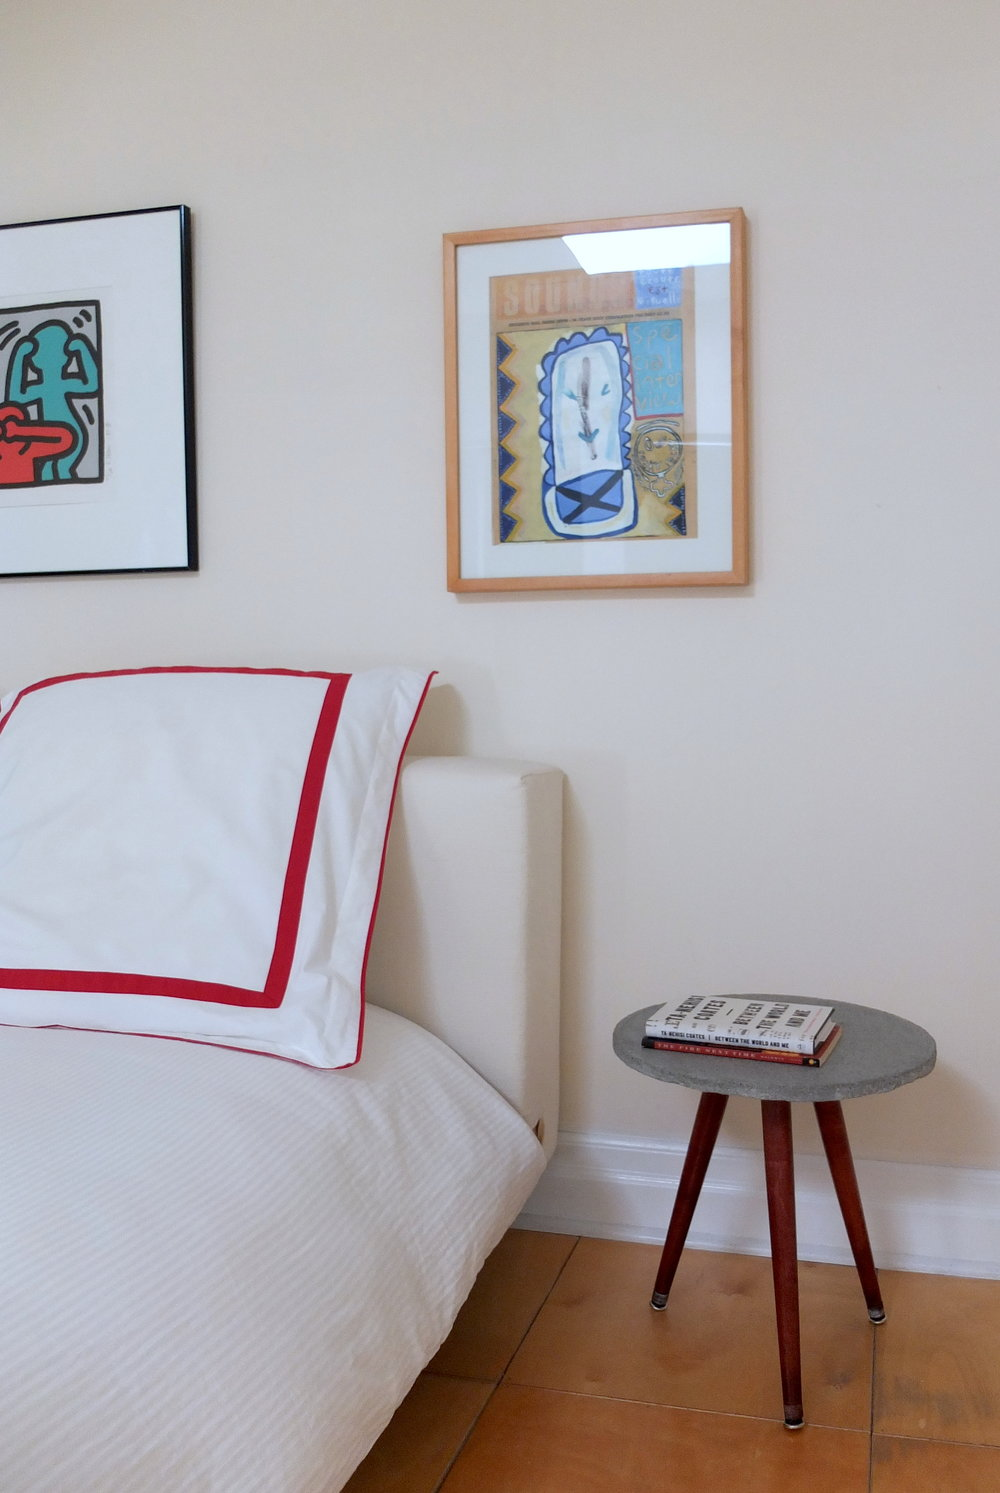 Lalaya Design_Ka Tsi Ka Ta_concrete & wood side table_bedroom_handmade.JPG